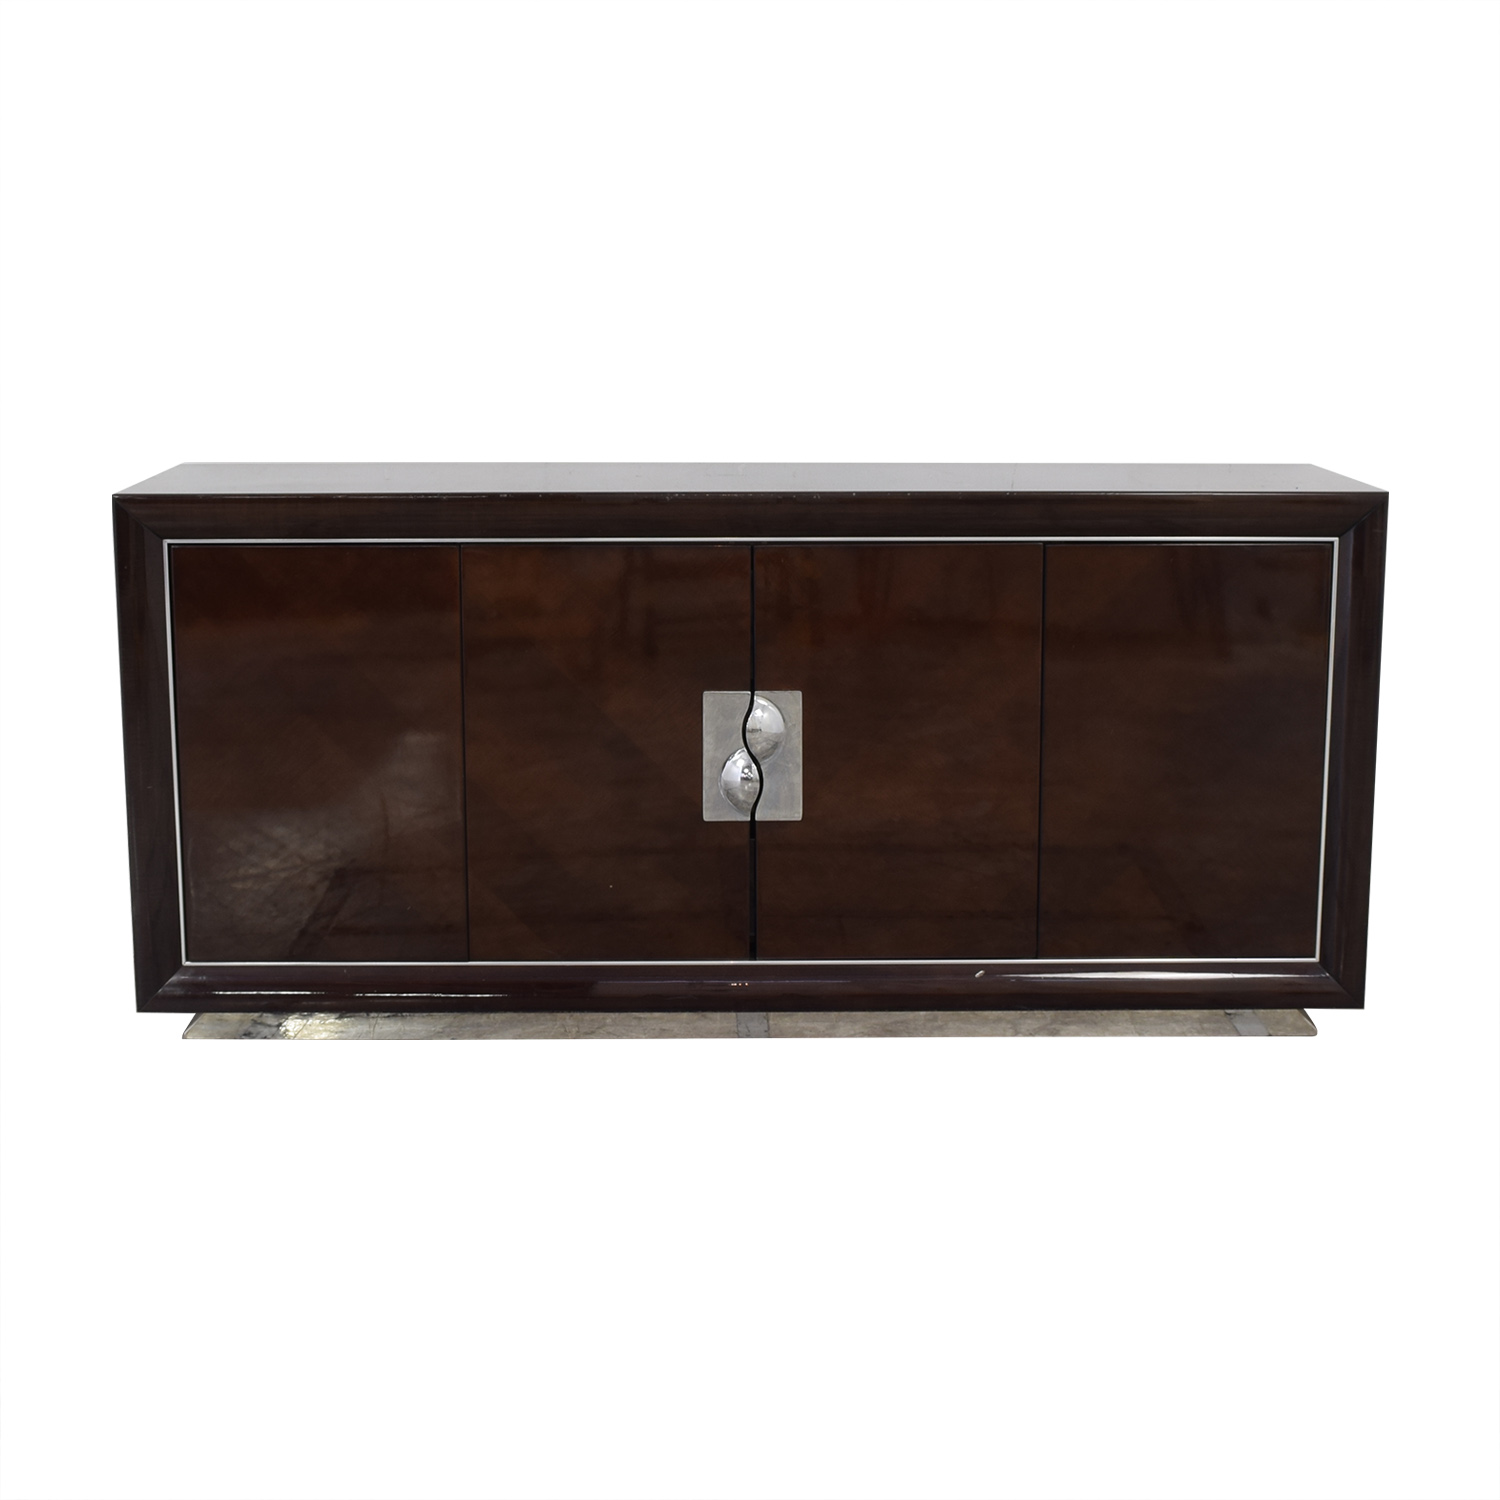 Elio Elio Modern Art Deco Credenza dark brown